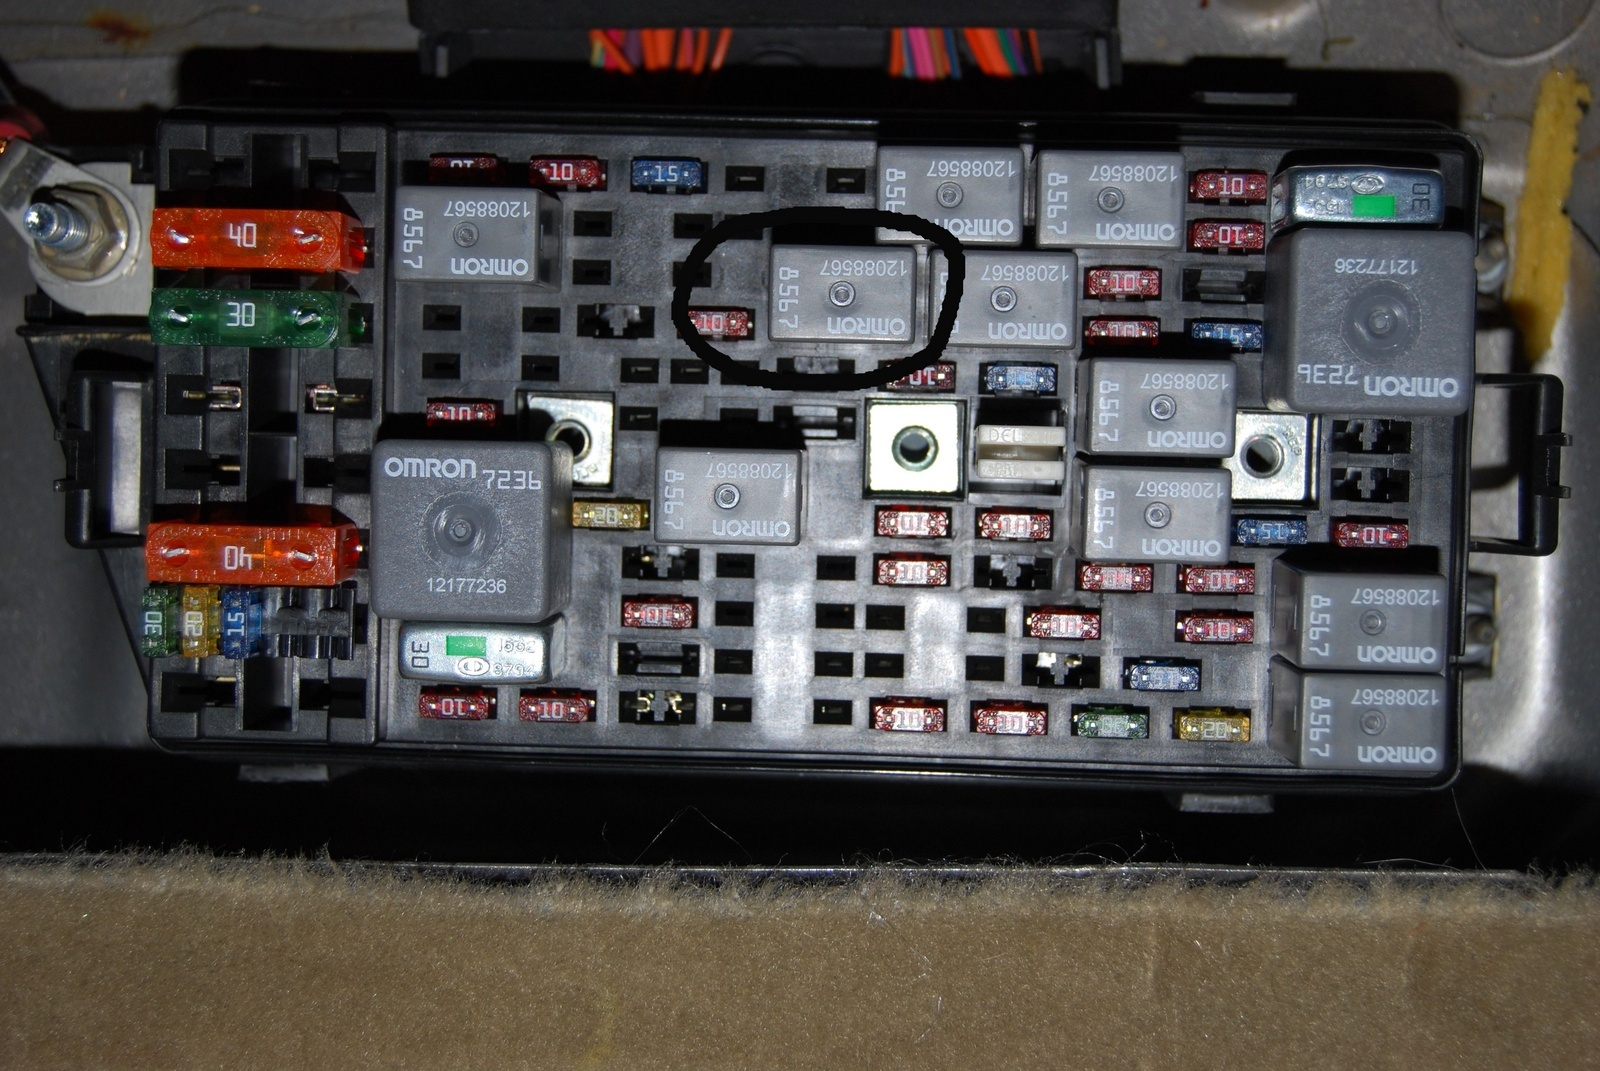 Fuse Box On 2000 Buick Lesabre Wiring Diagrams Scematic 2011 Lucerne Inside Diagram 94 Century Location 1993